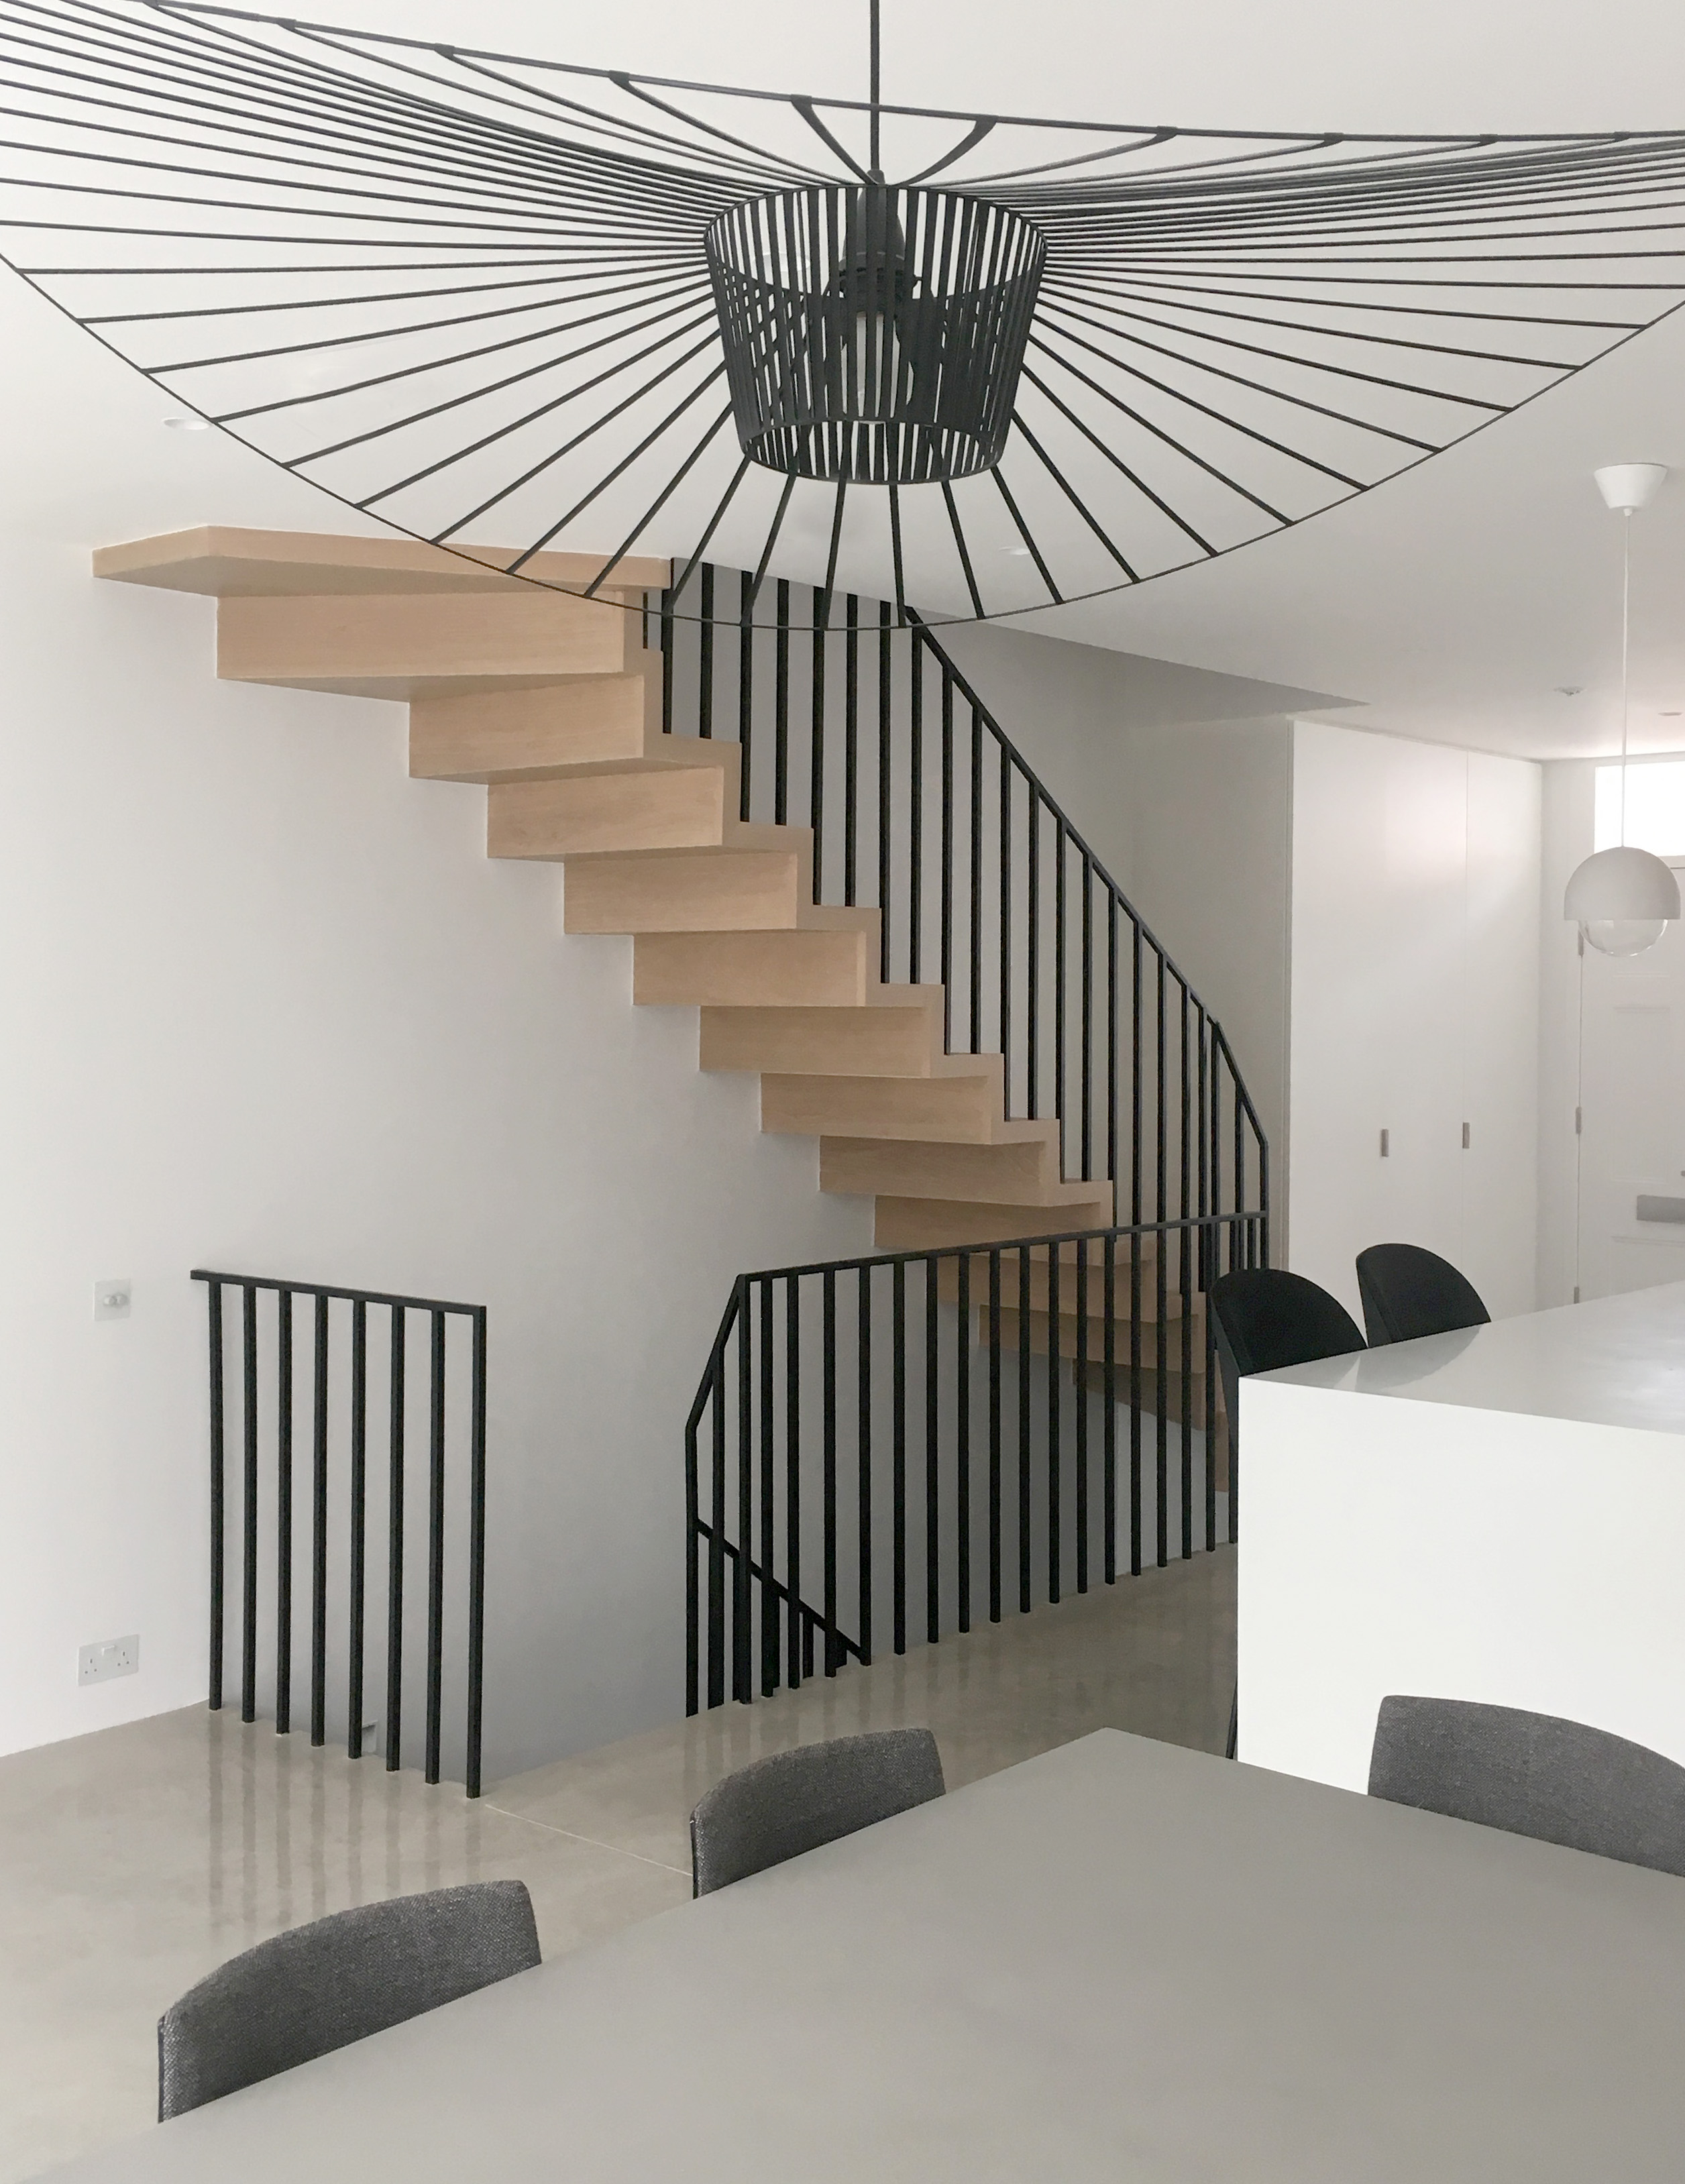 SIMPLE SQUARE BAR BALUSTRADE AND HANDRAIL